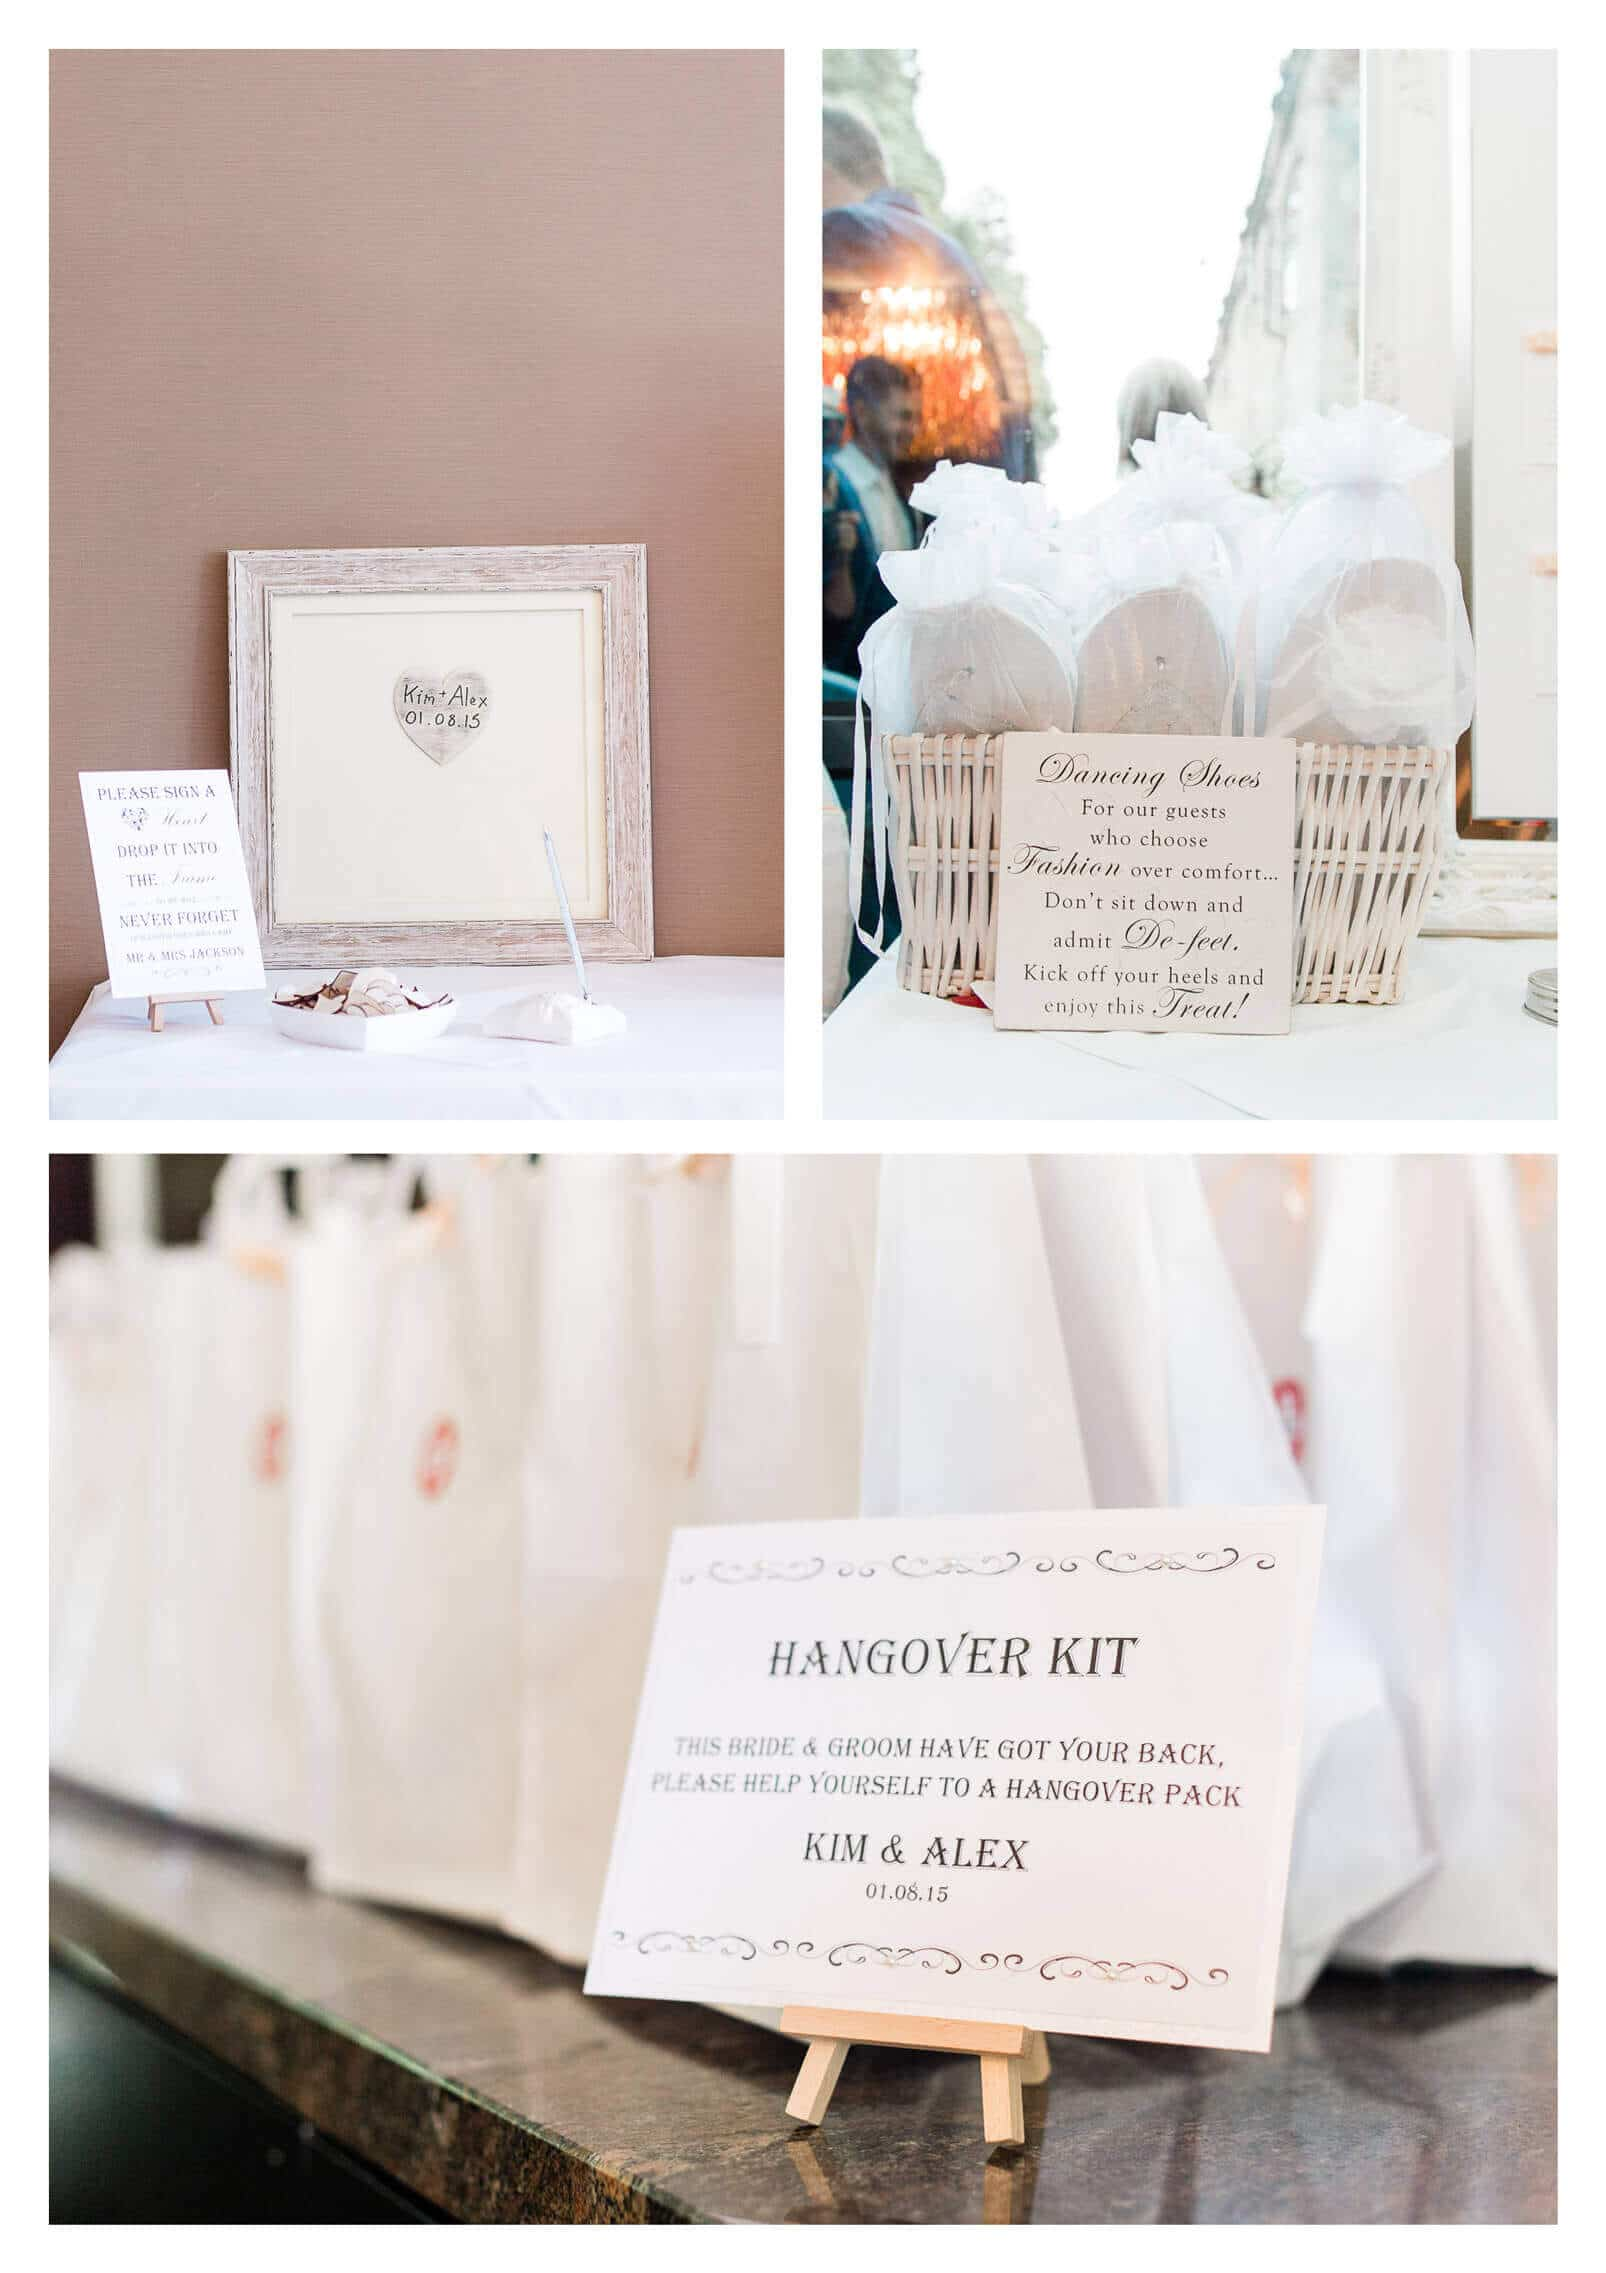 Guest book and wedding favours hangover kit | Rhinefield House Hotel wedding photography